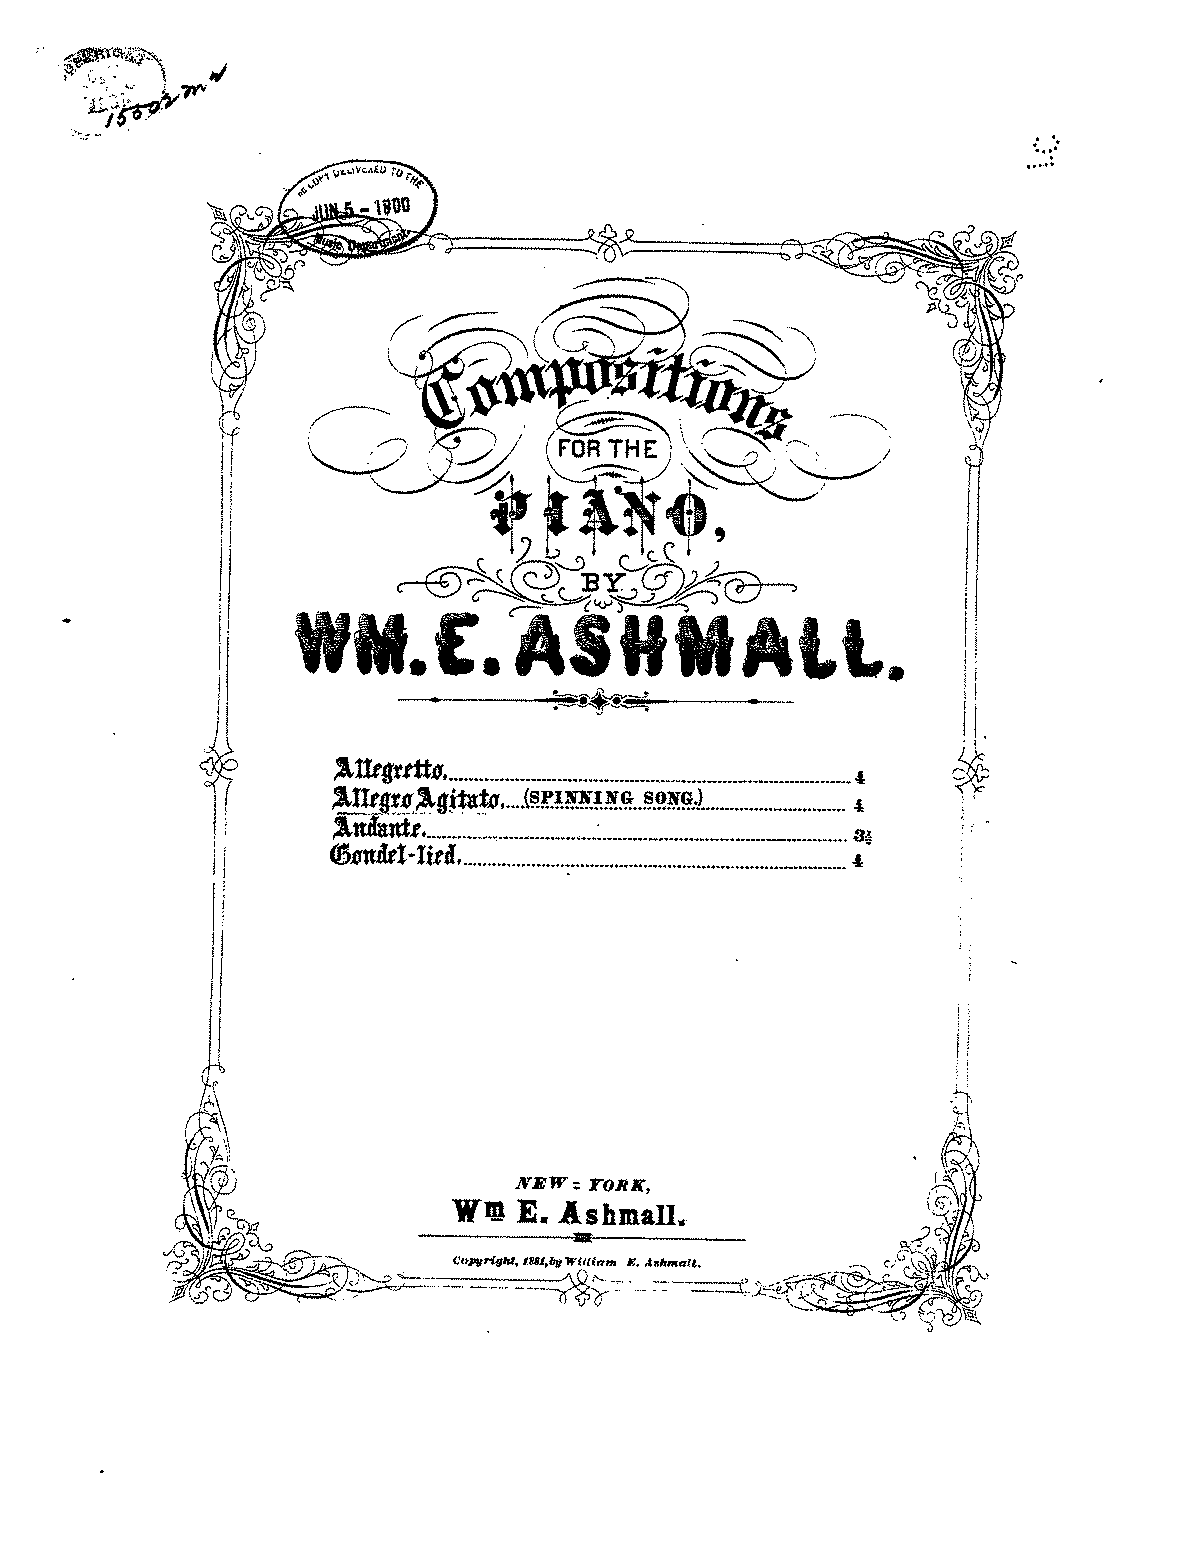 PMLP221809-AshmallCompositions 2.pdf